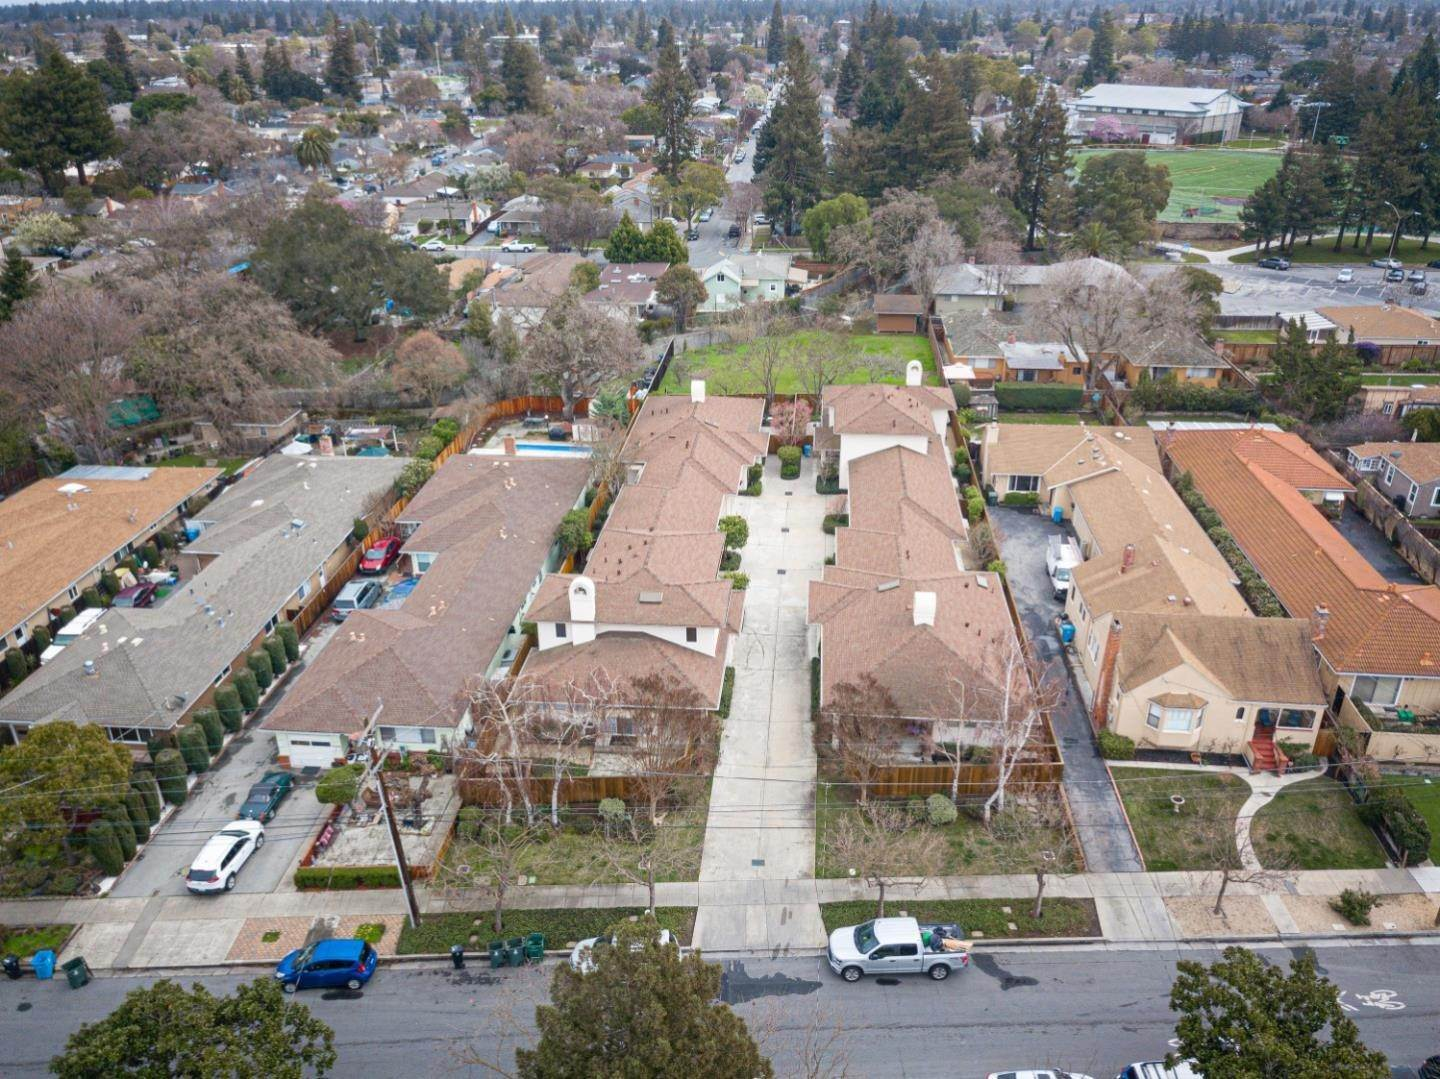 Multi-Family Homes for Sale at 1105 Madison Avenue Redwood City, California 94061 United States